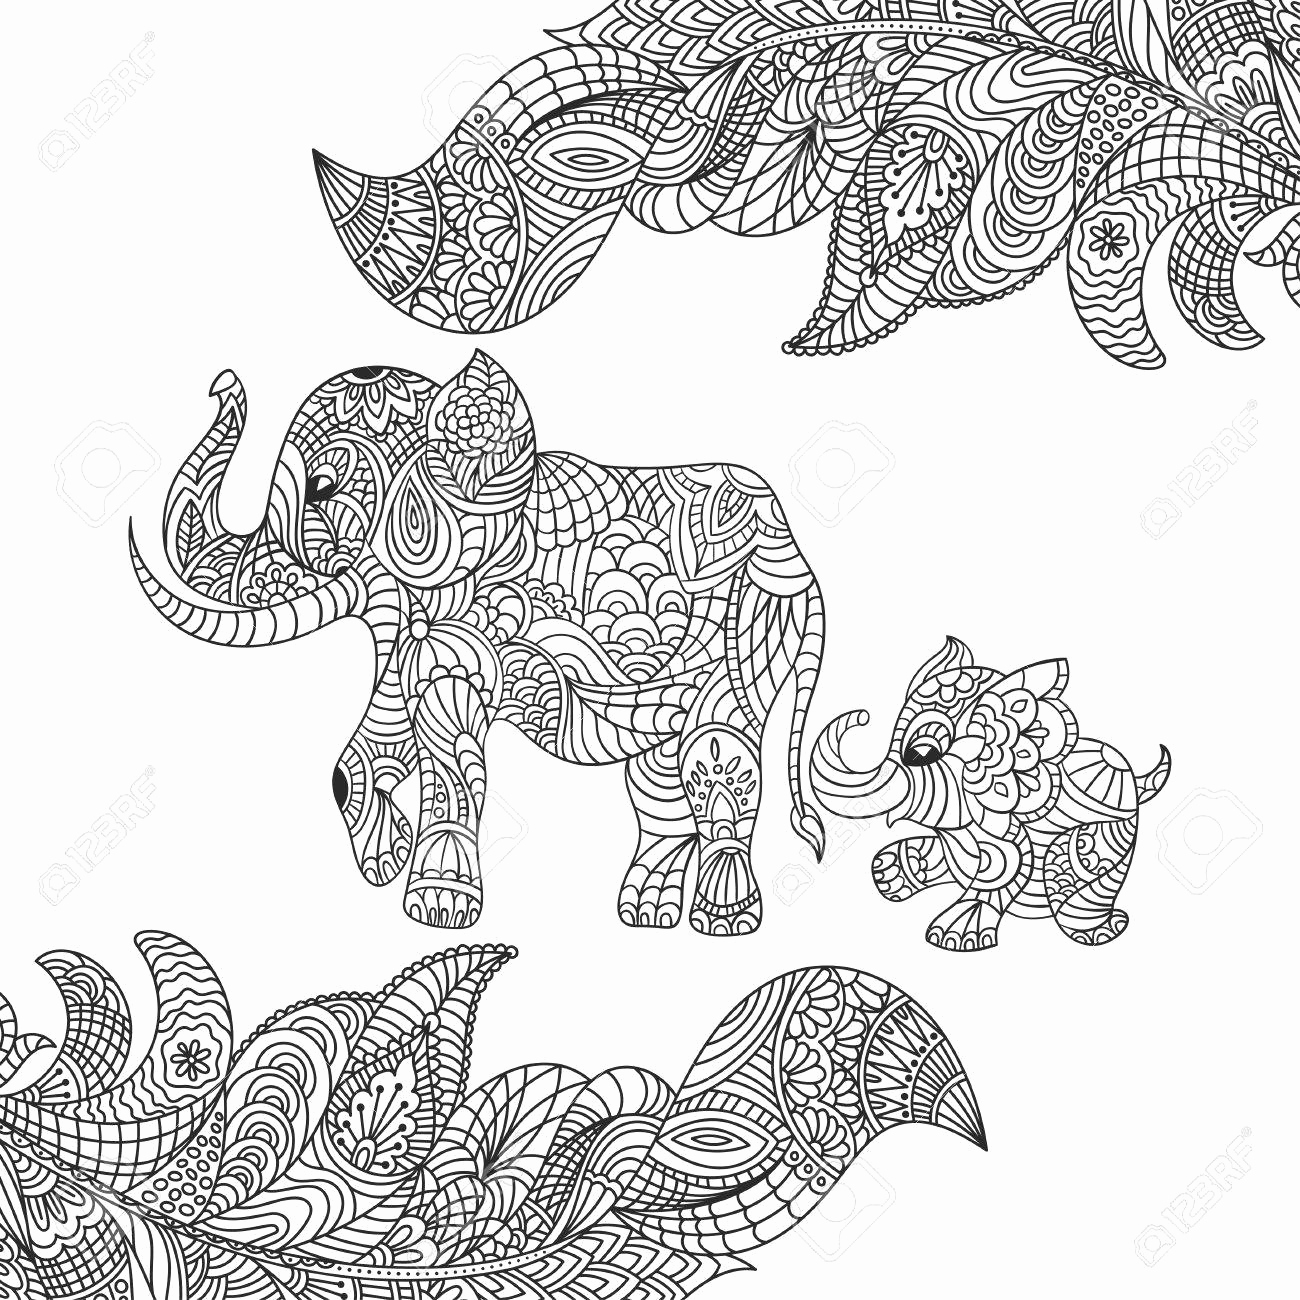 1300x1300 Mandala Coloring Pages Elephant Vector Monochrome Hand Drawn